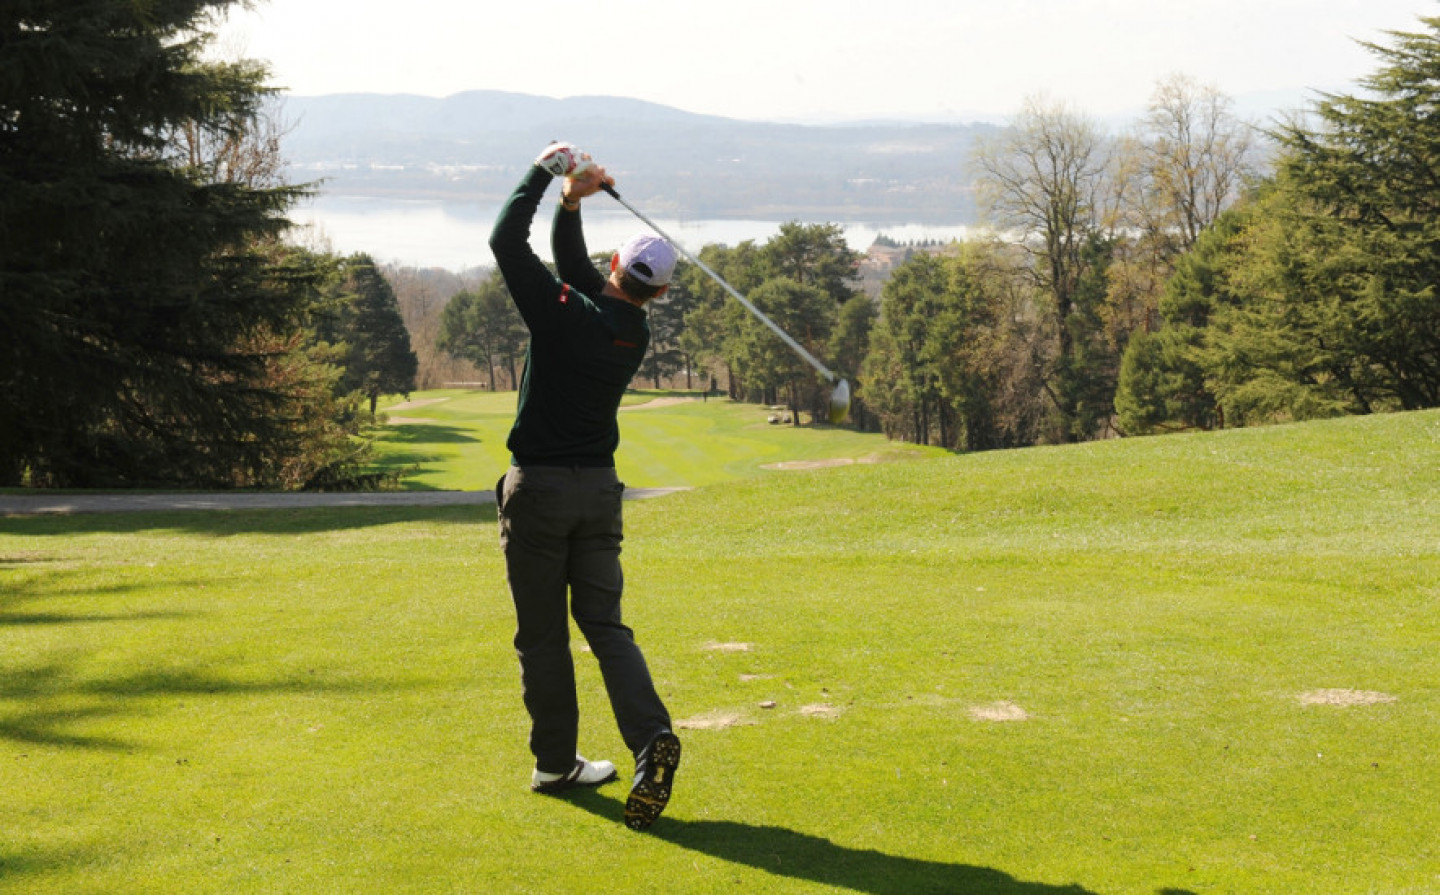 Golf: relaxing on the green